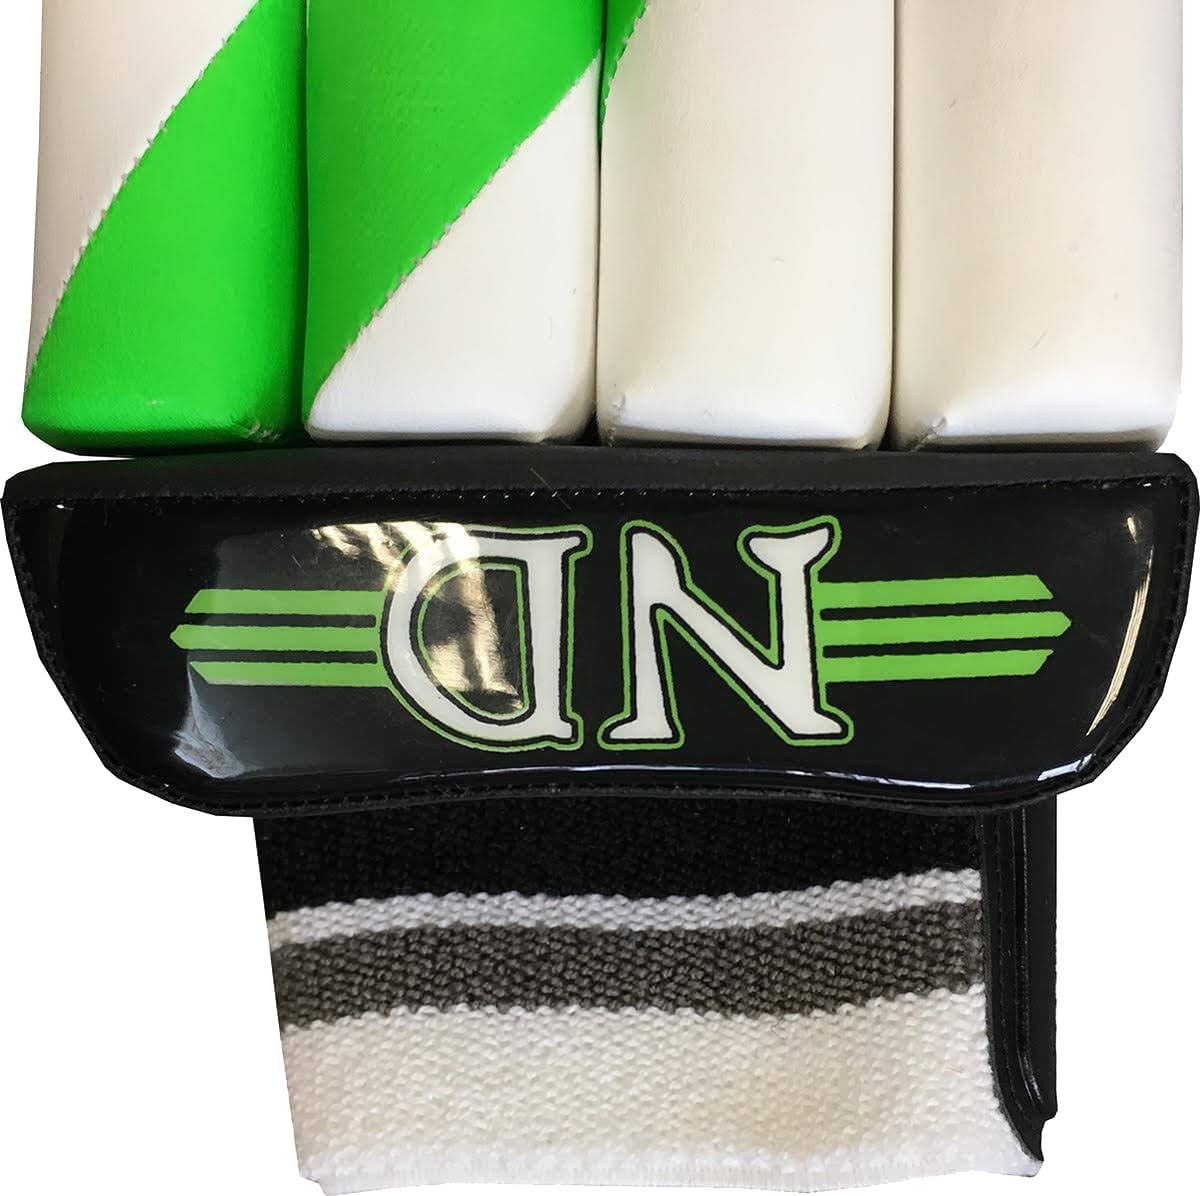 Only seulement de cricket ND de cricket Gants de baseball Uni Vert et blanc limit/ée Plus